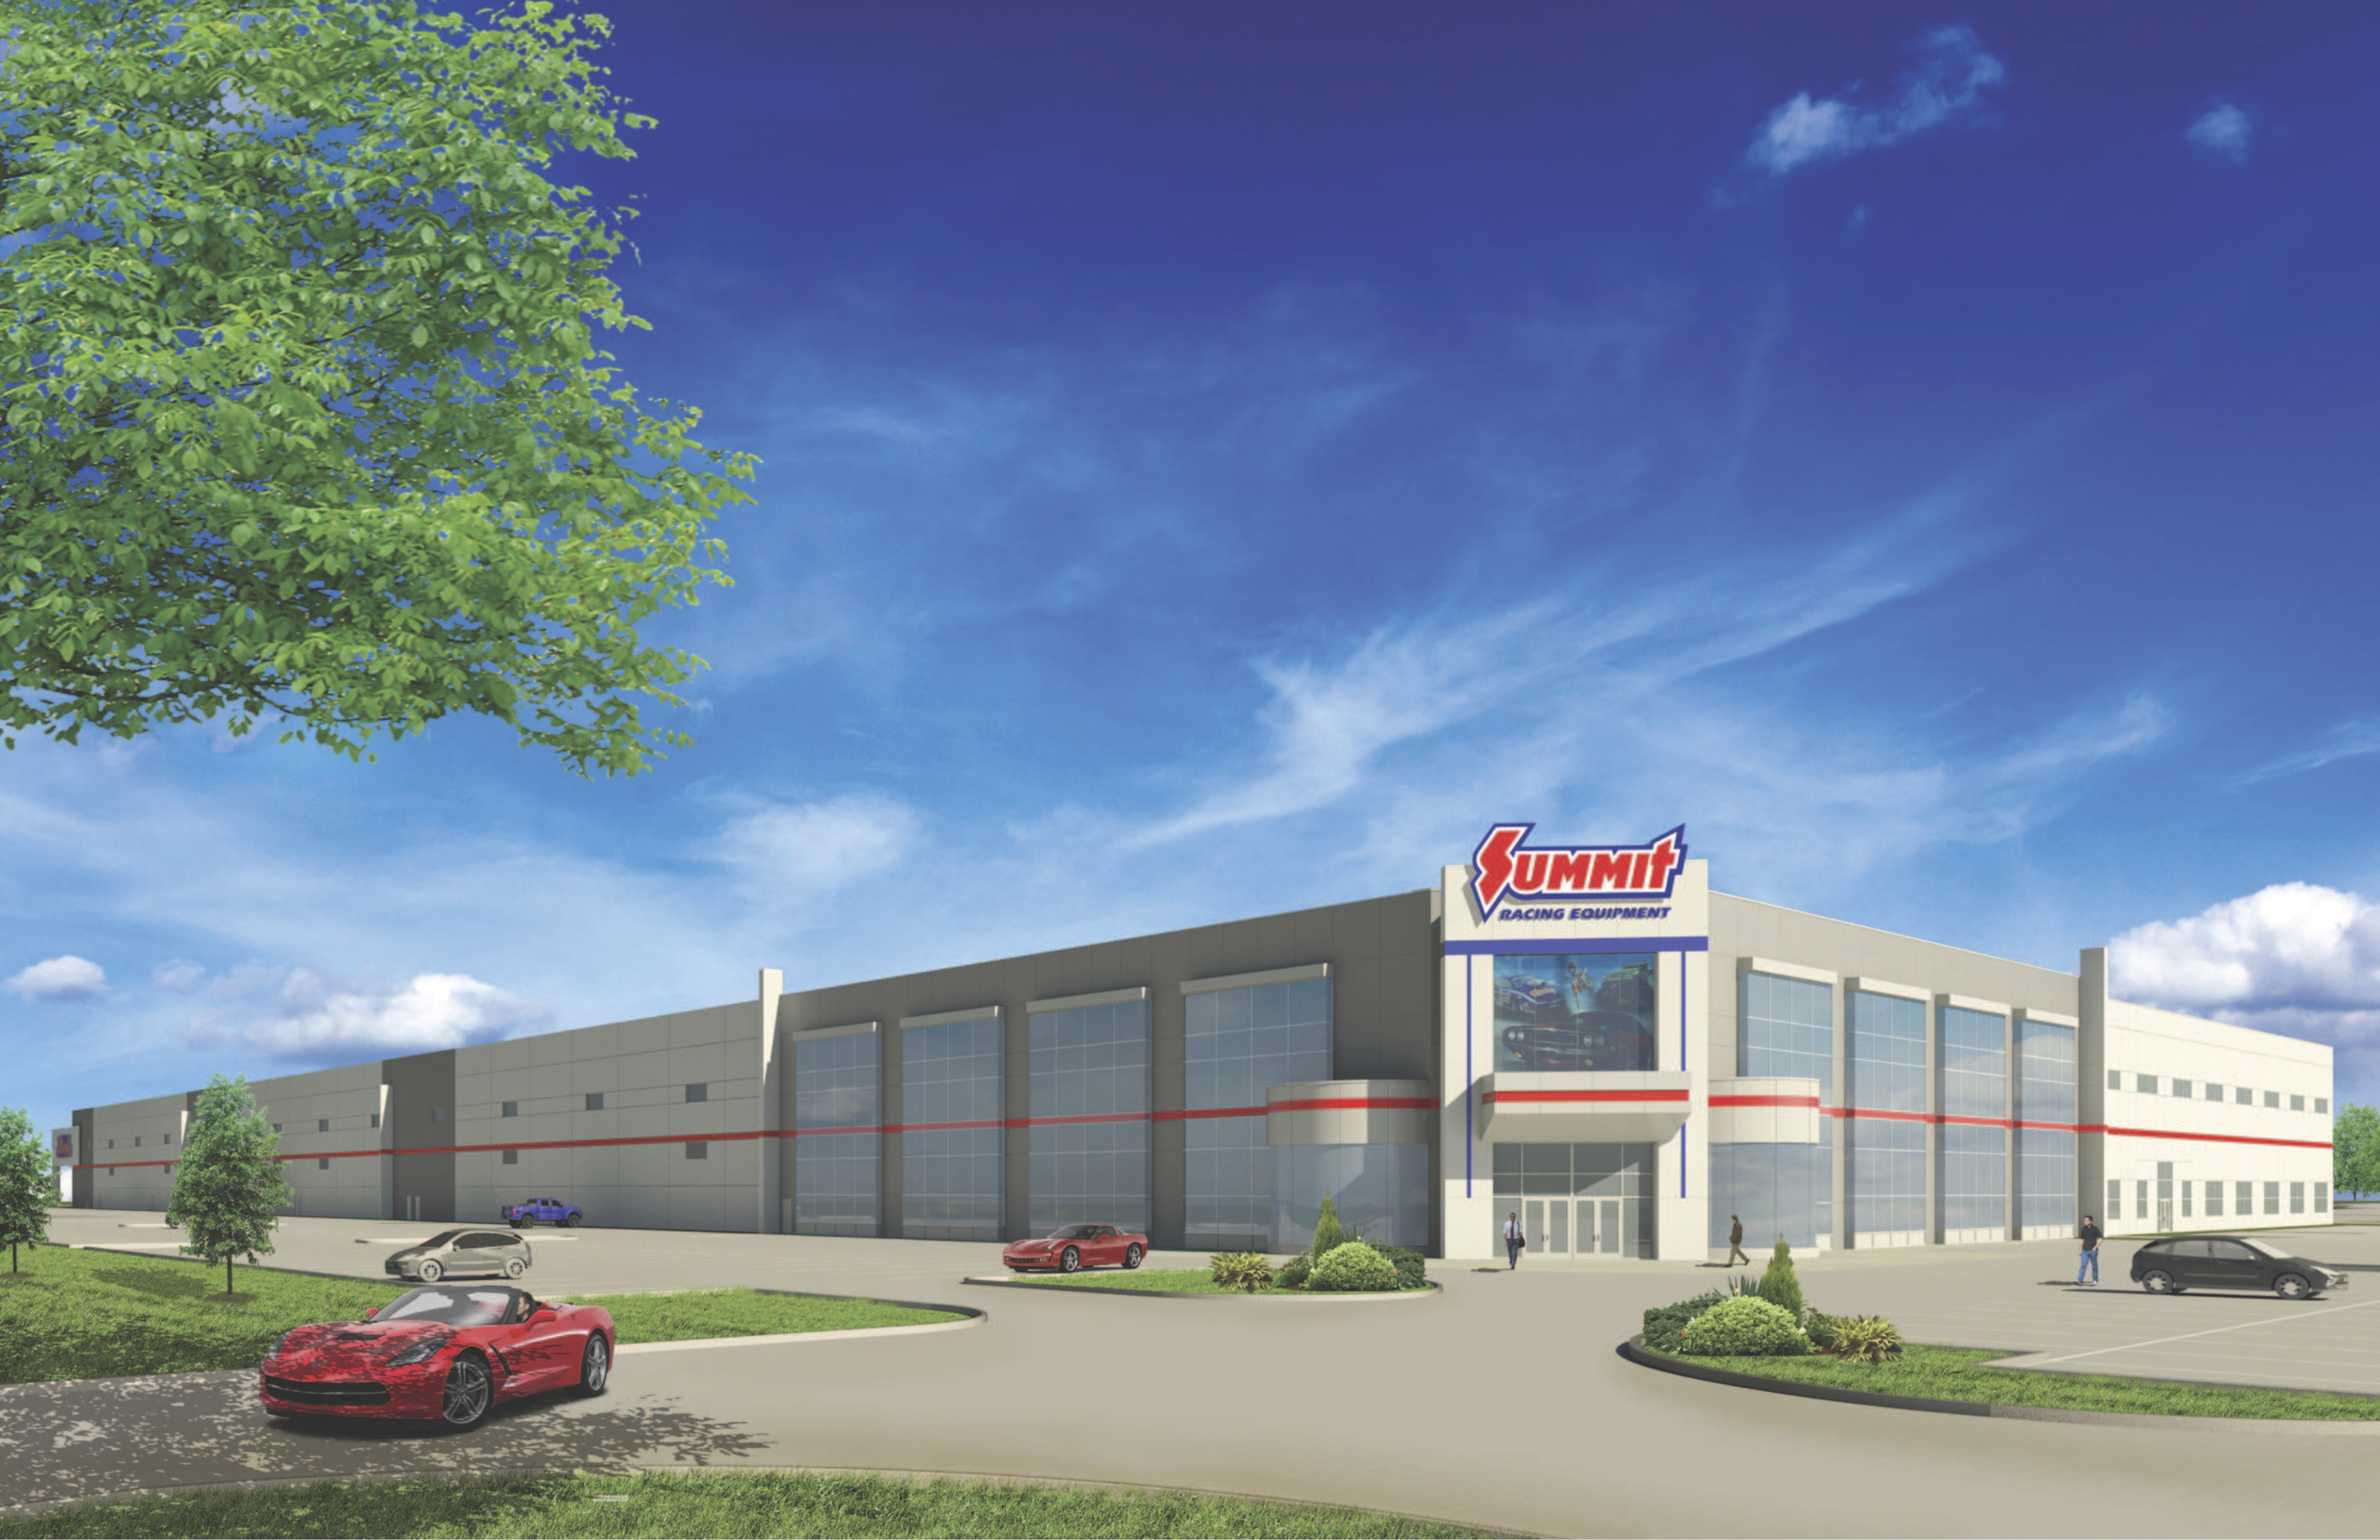 Summit racing zooms into Arlington with 700,000-square-foot